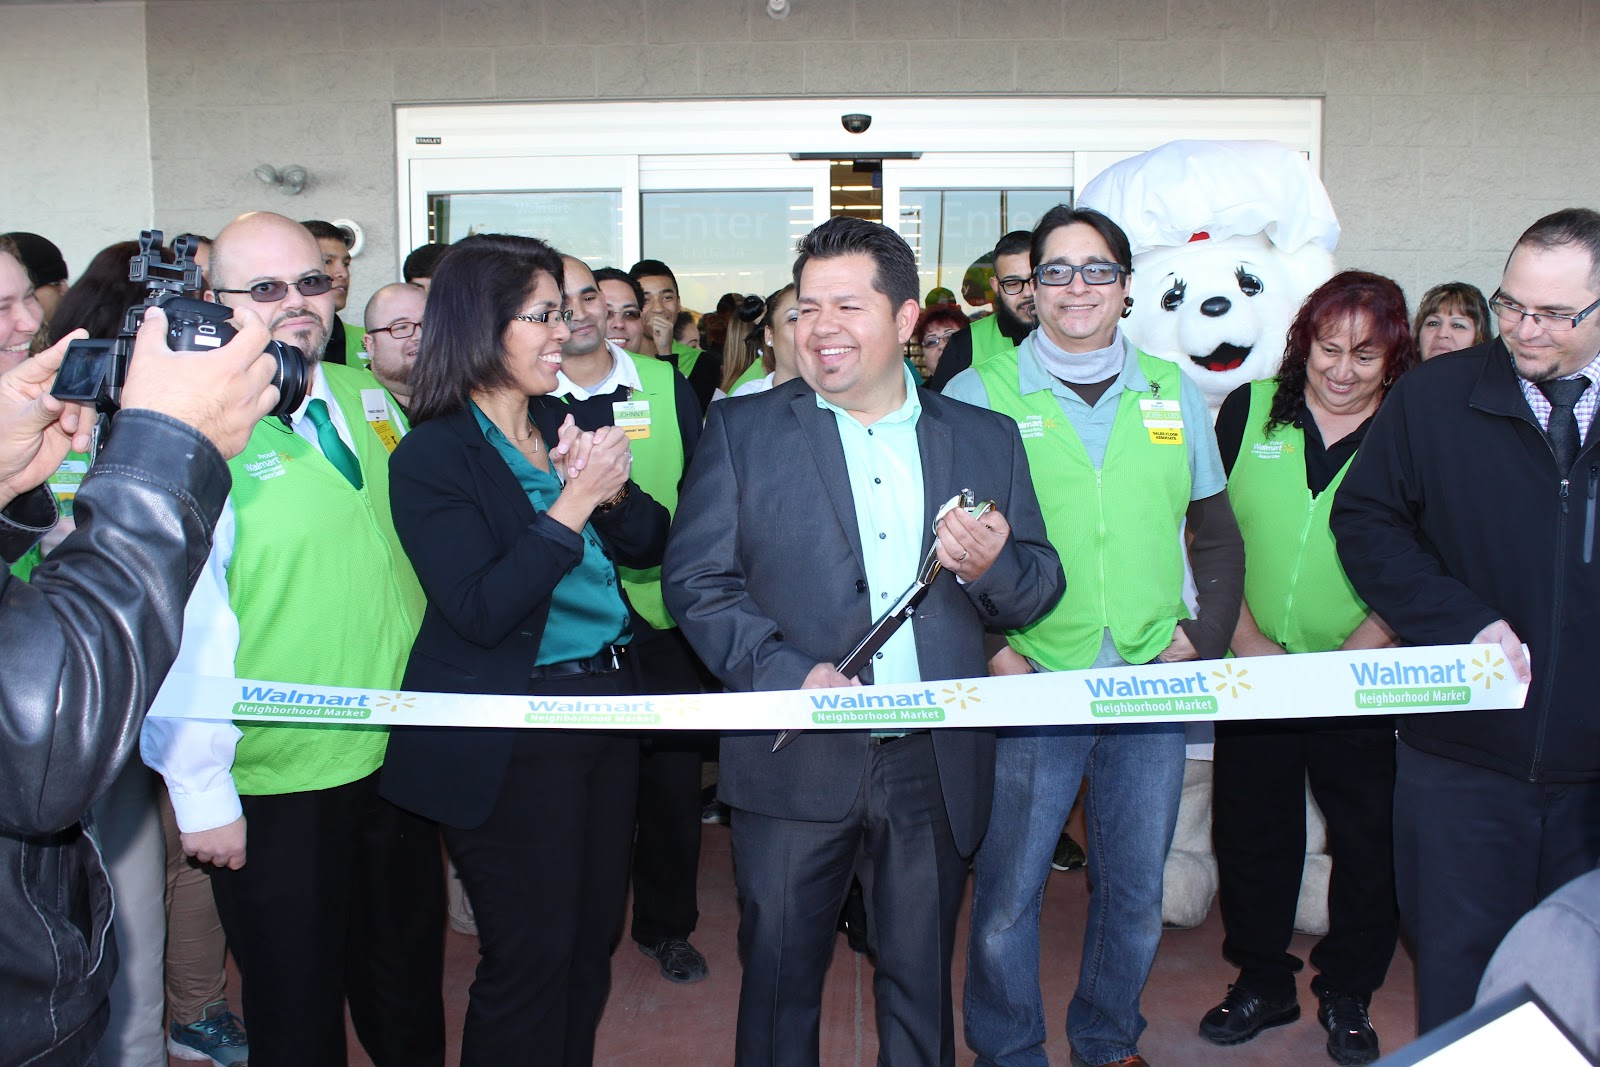 Grand opening ribbon cutting celebration for Walmart Neighborhood Market, located at 2555 E. Commerce Center Place, 85706.